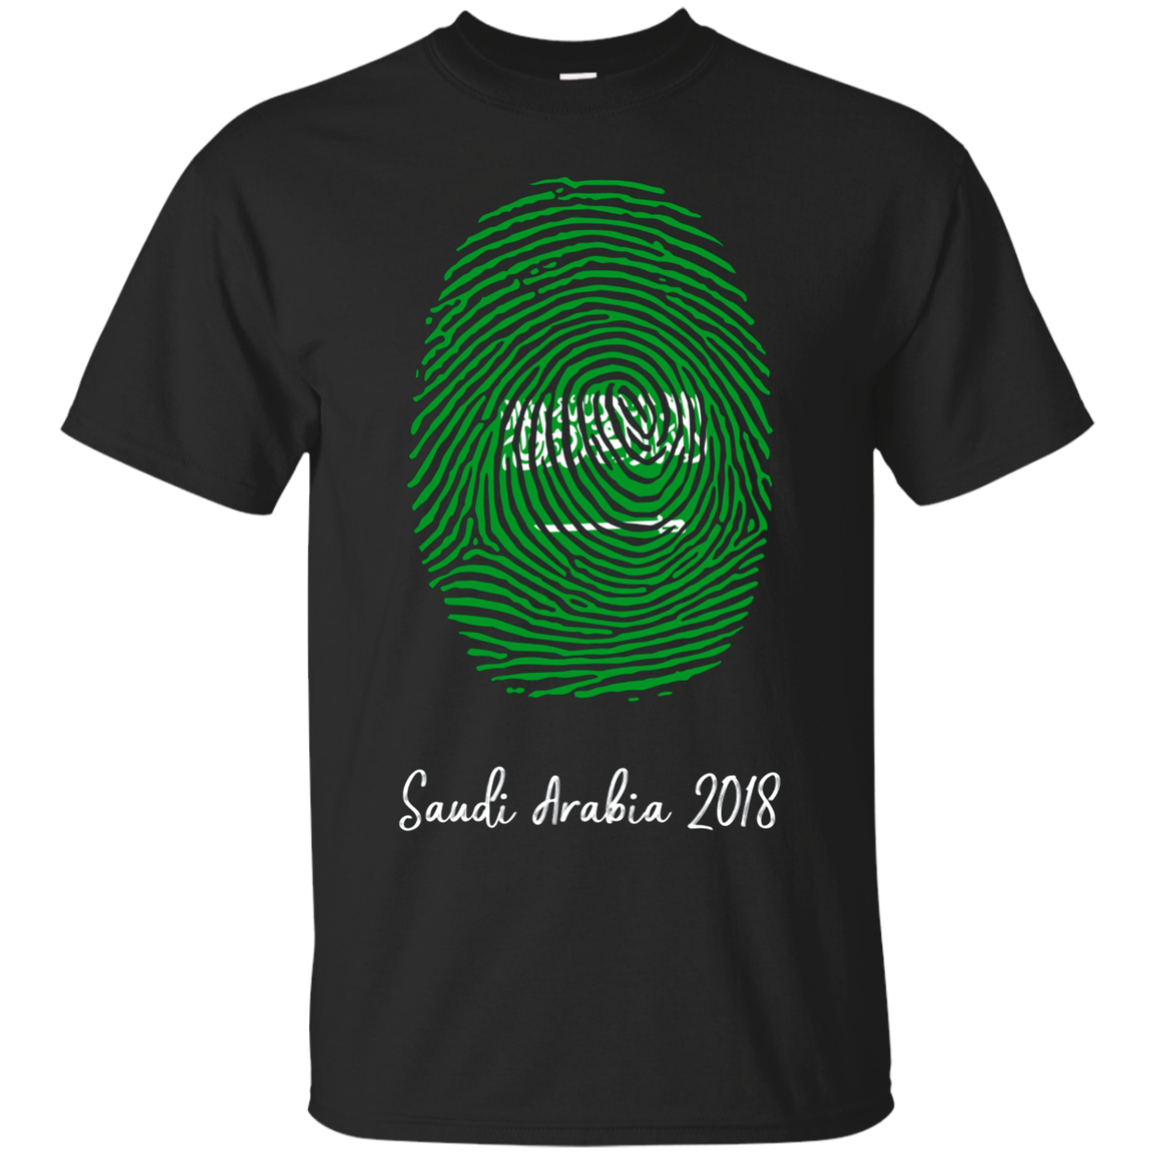 Saudi Arabia Shirt 2018 Thumbprint Soccer Flag Design